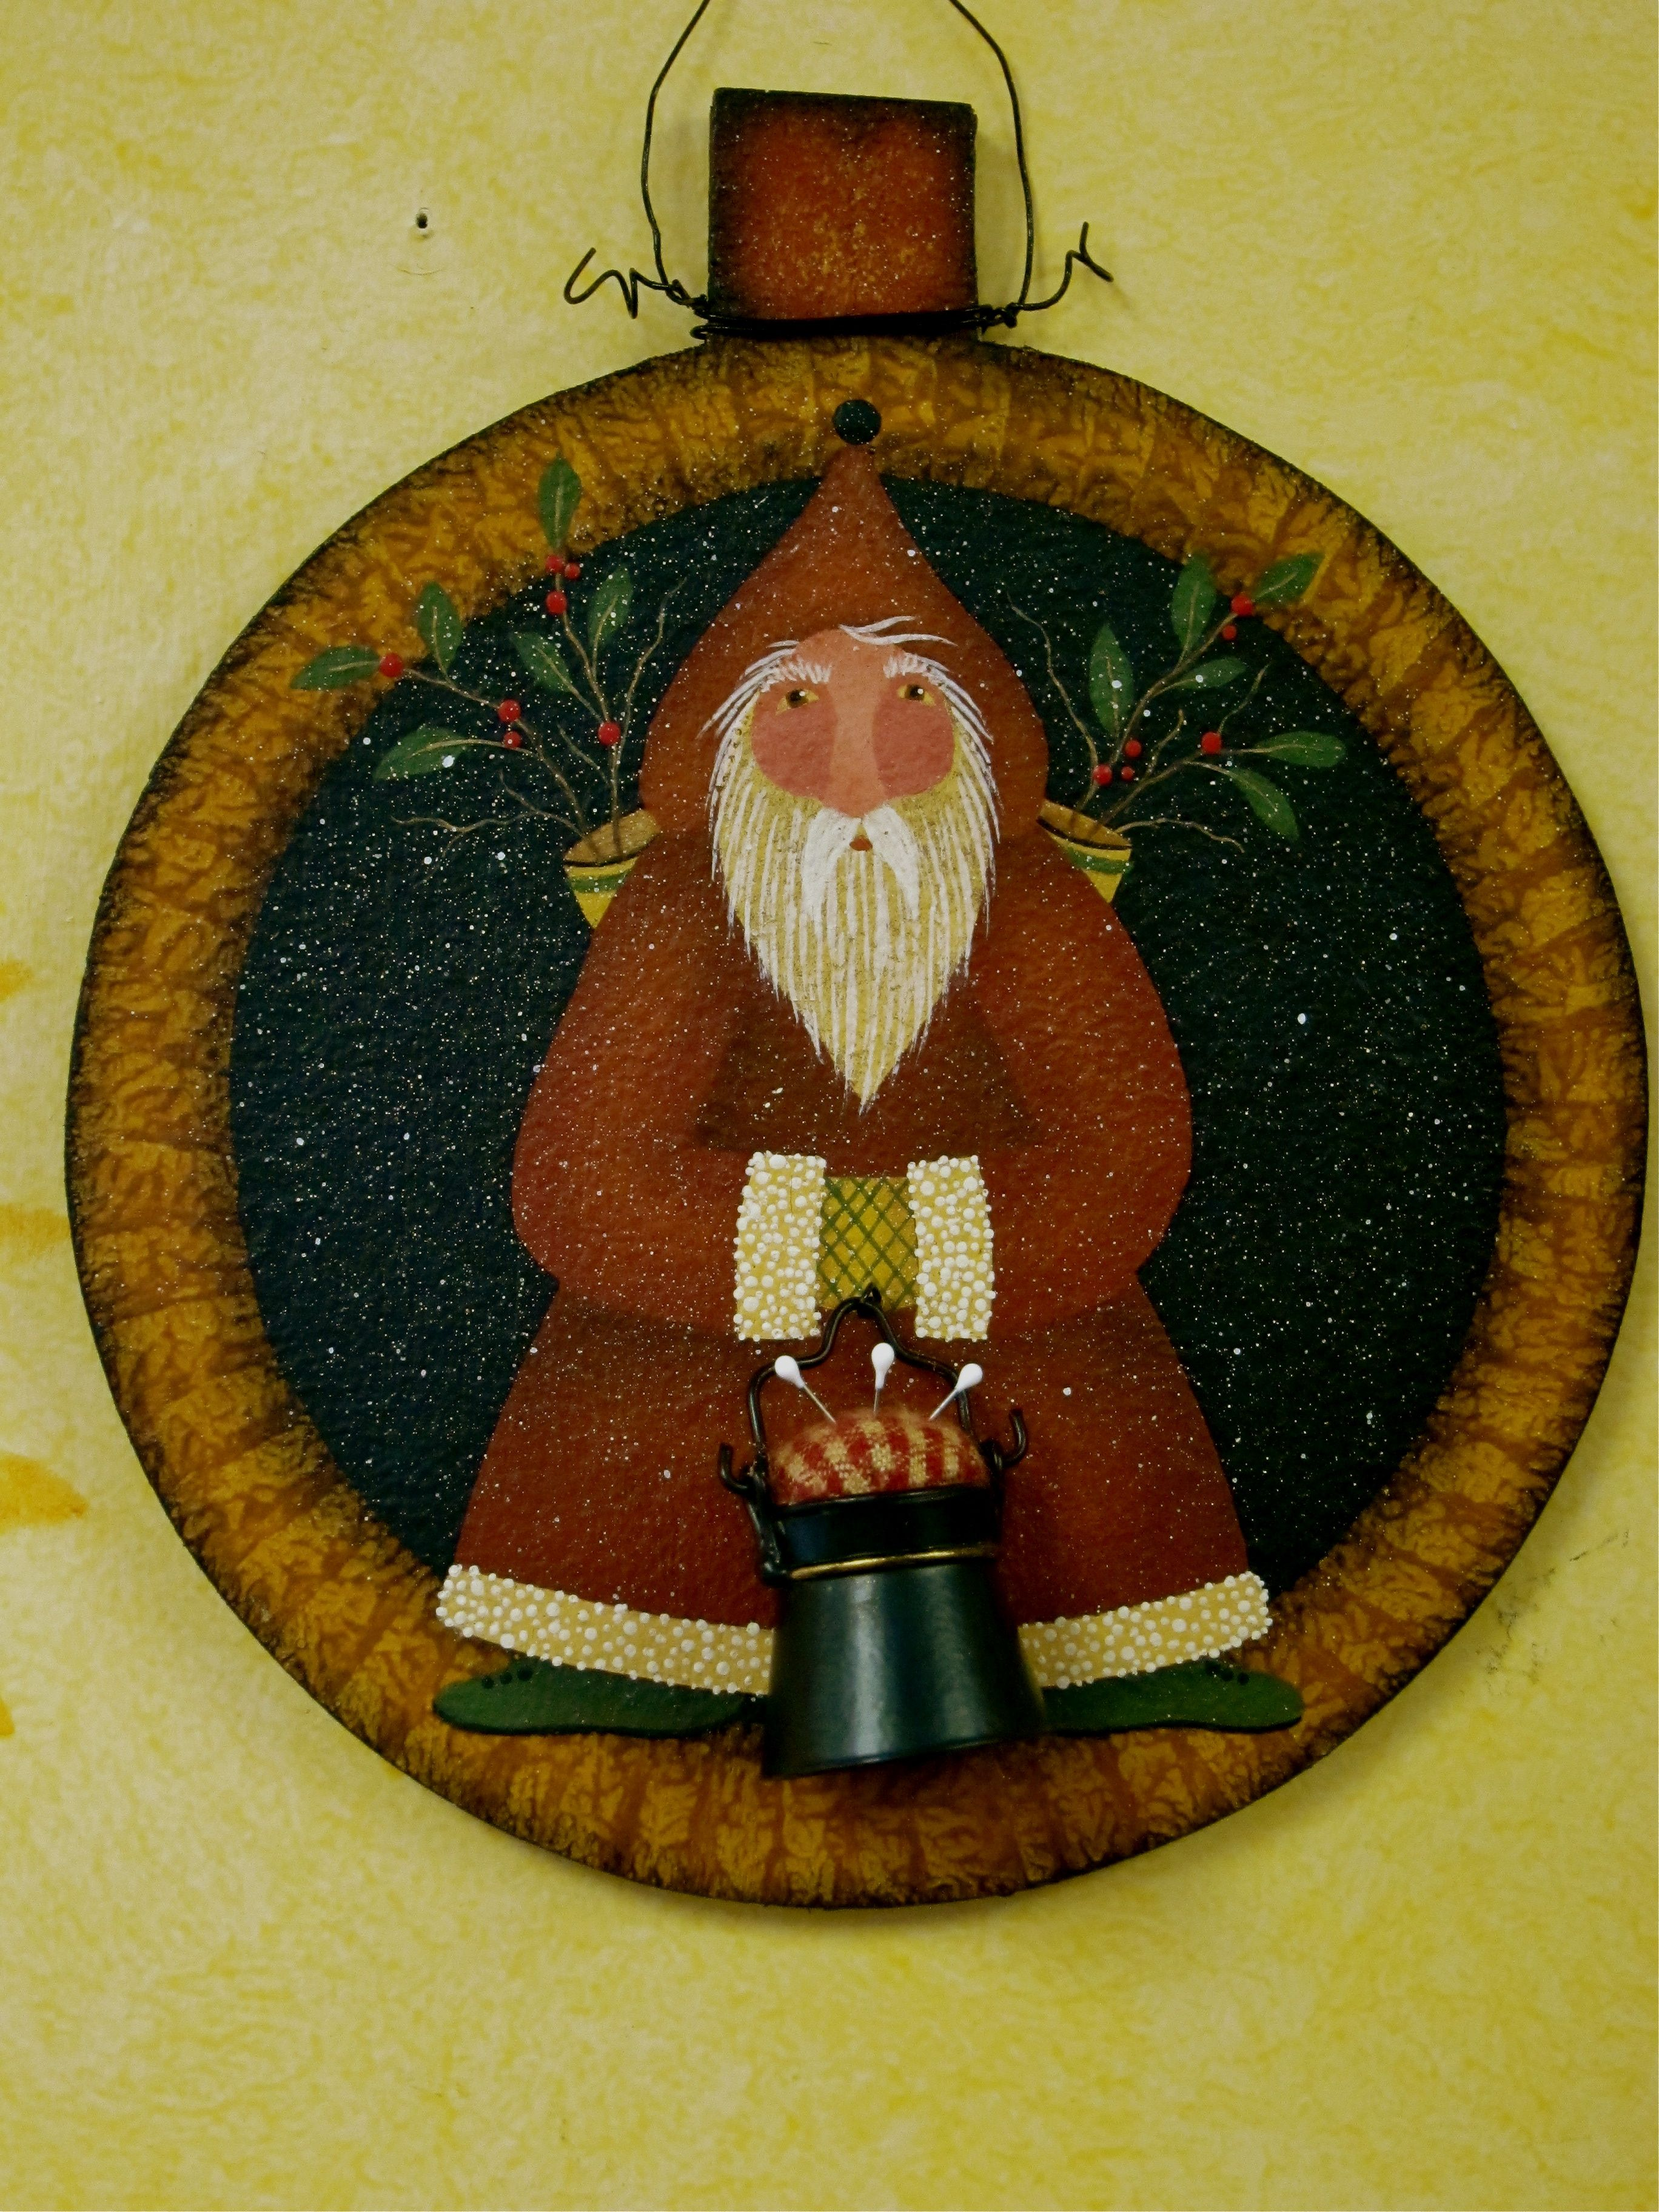 Homemade Christmas Gifts Sewing Circle Santa Ornament Pattern Is Available